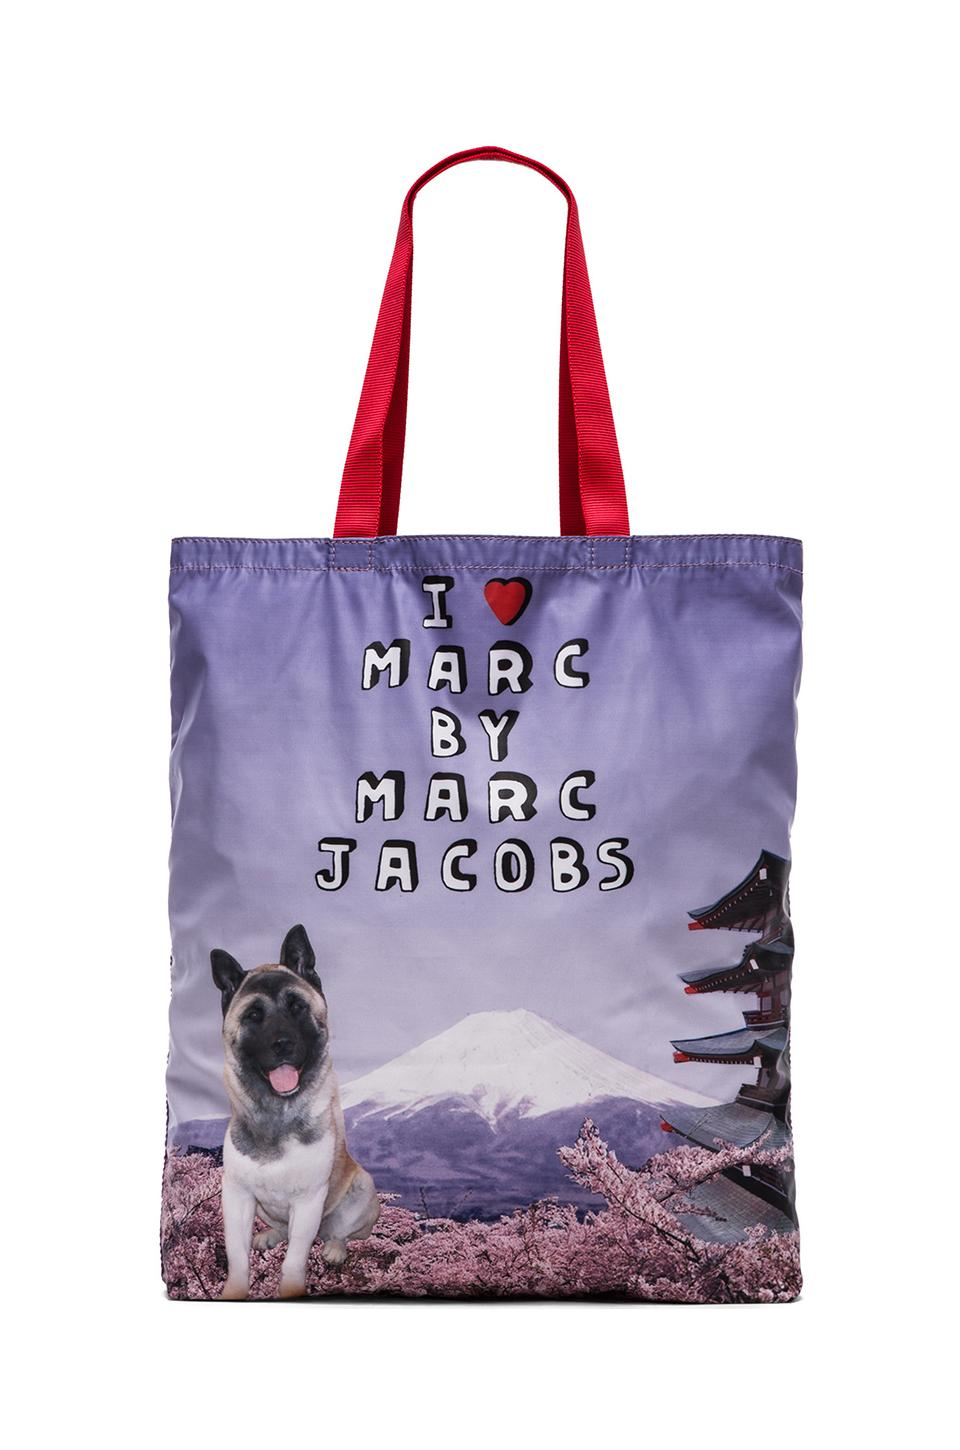 Marc by Marc Jacobs Jet Set Pets Akami Tokyo Tote in Pastel Purple Multi